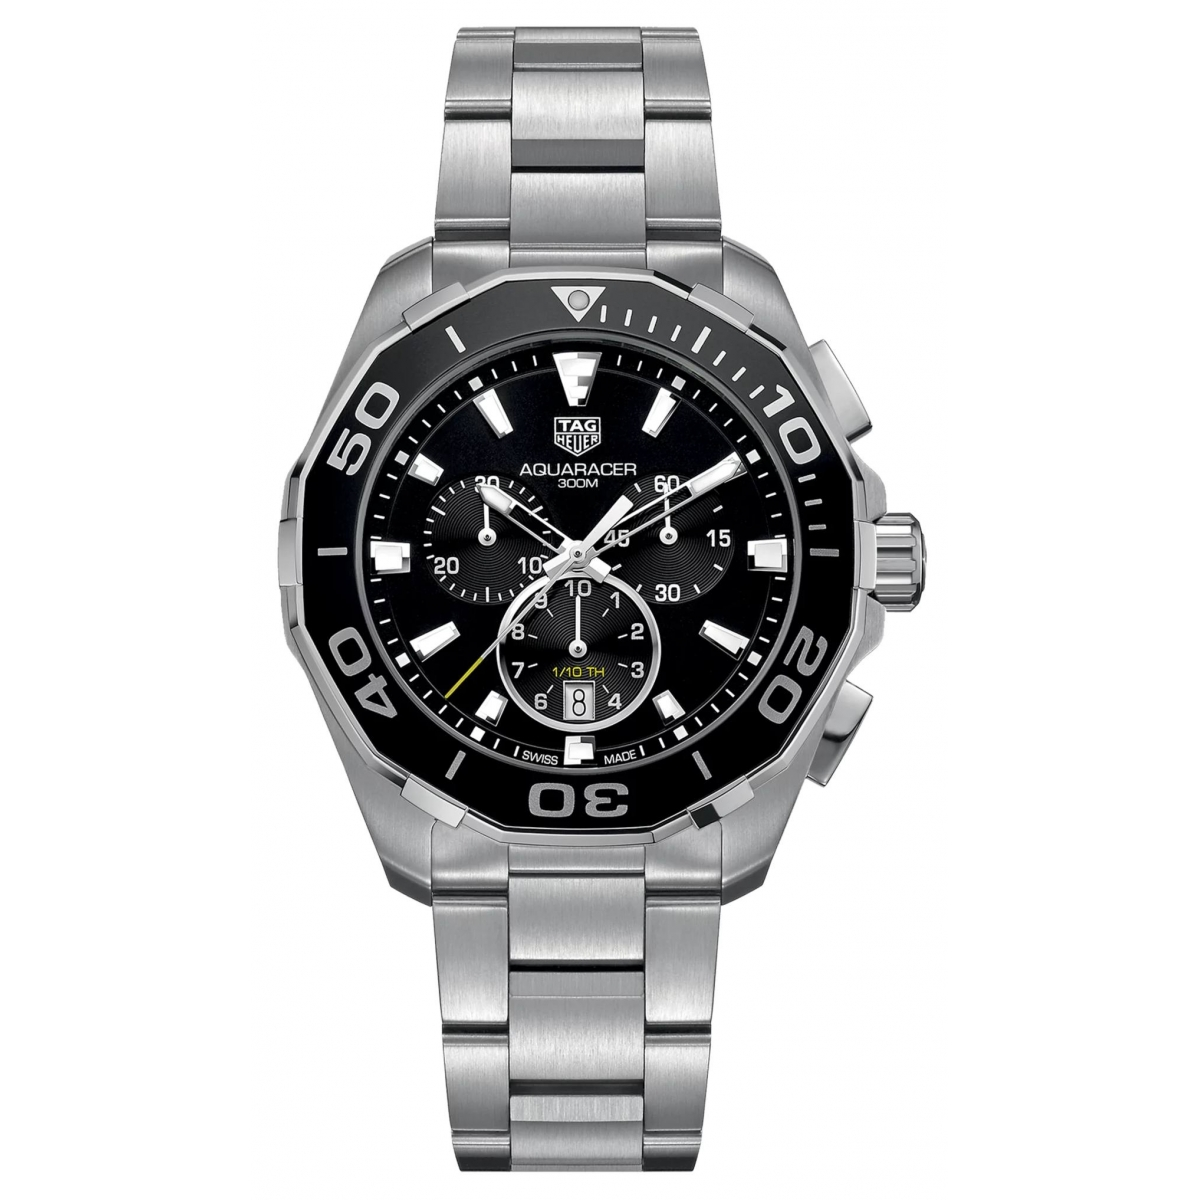 Aquaracer Chronograph Esf Negra 43mm